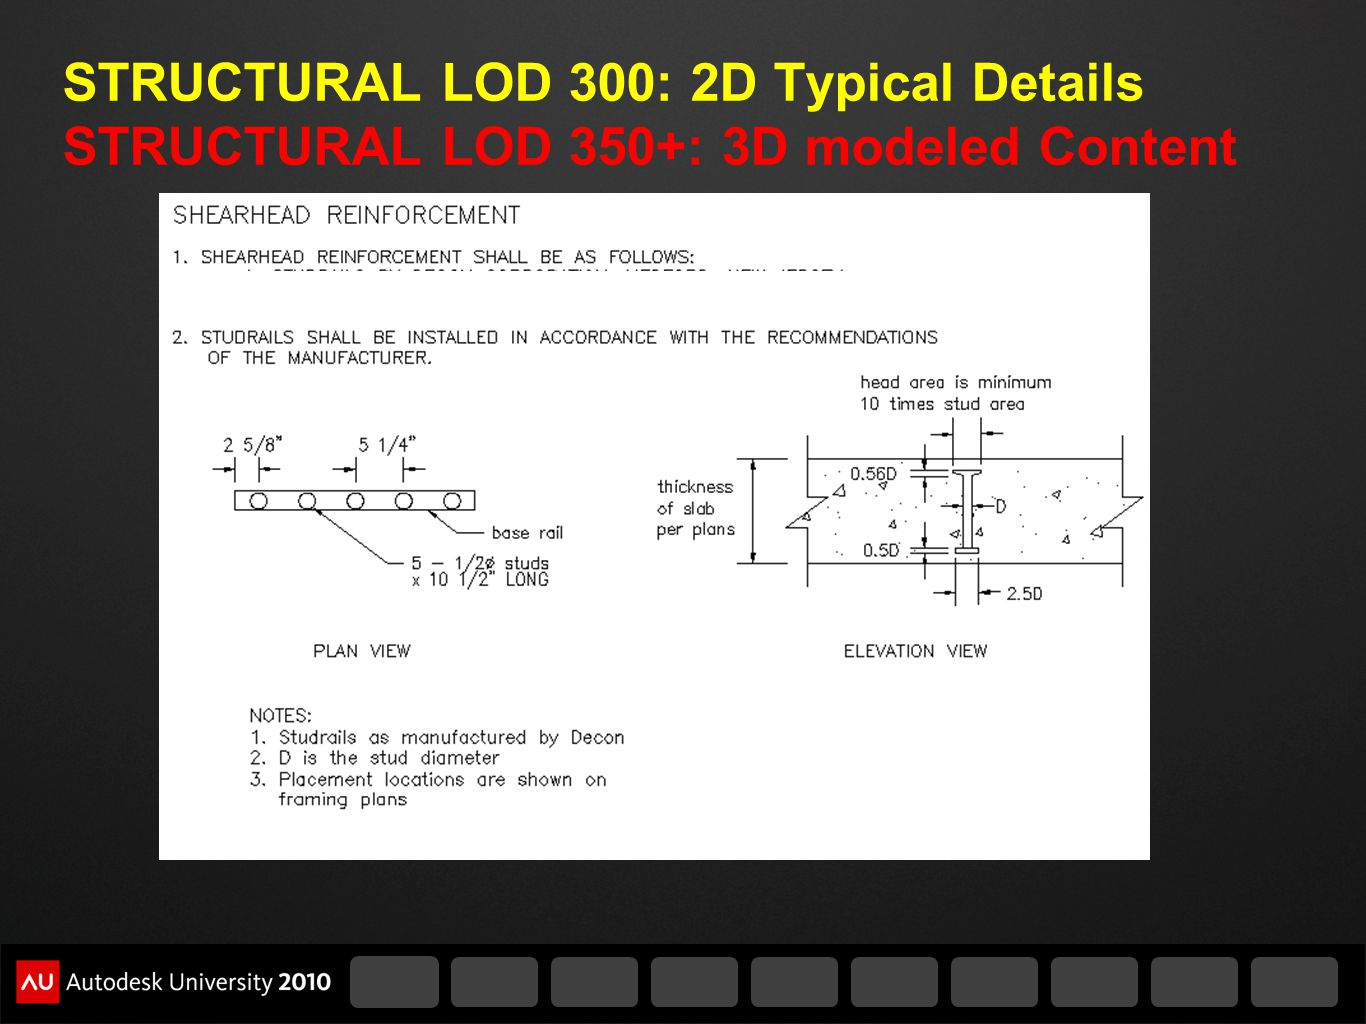 STRUCTURAL LOD 300: 2D Typical Details STRUCTURAL LOD 350+: 3D modeled Content